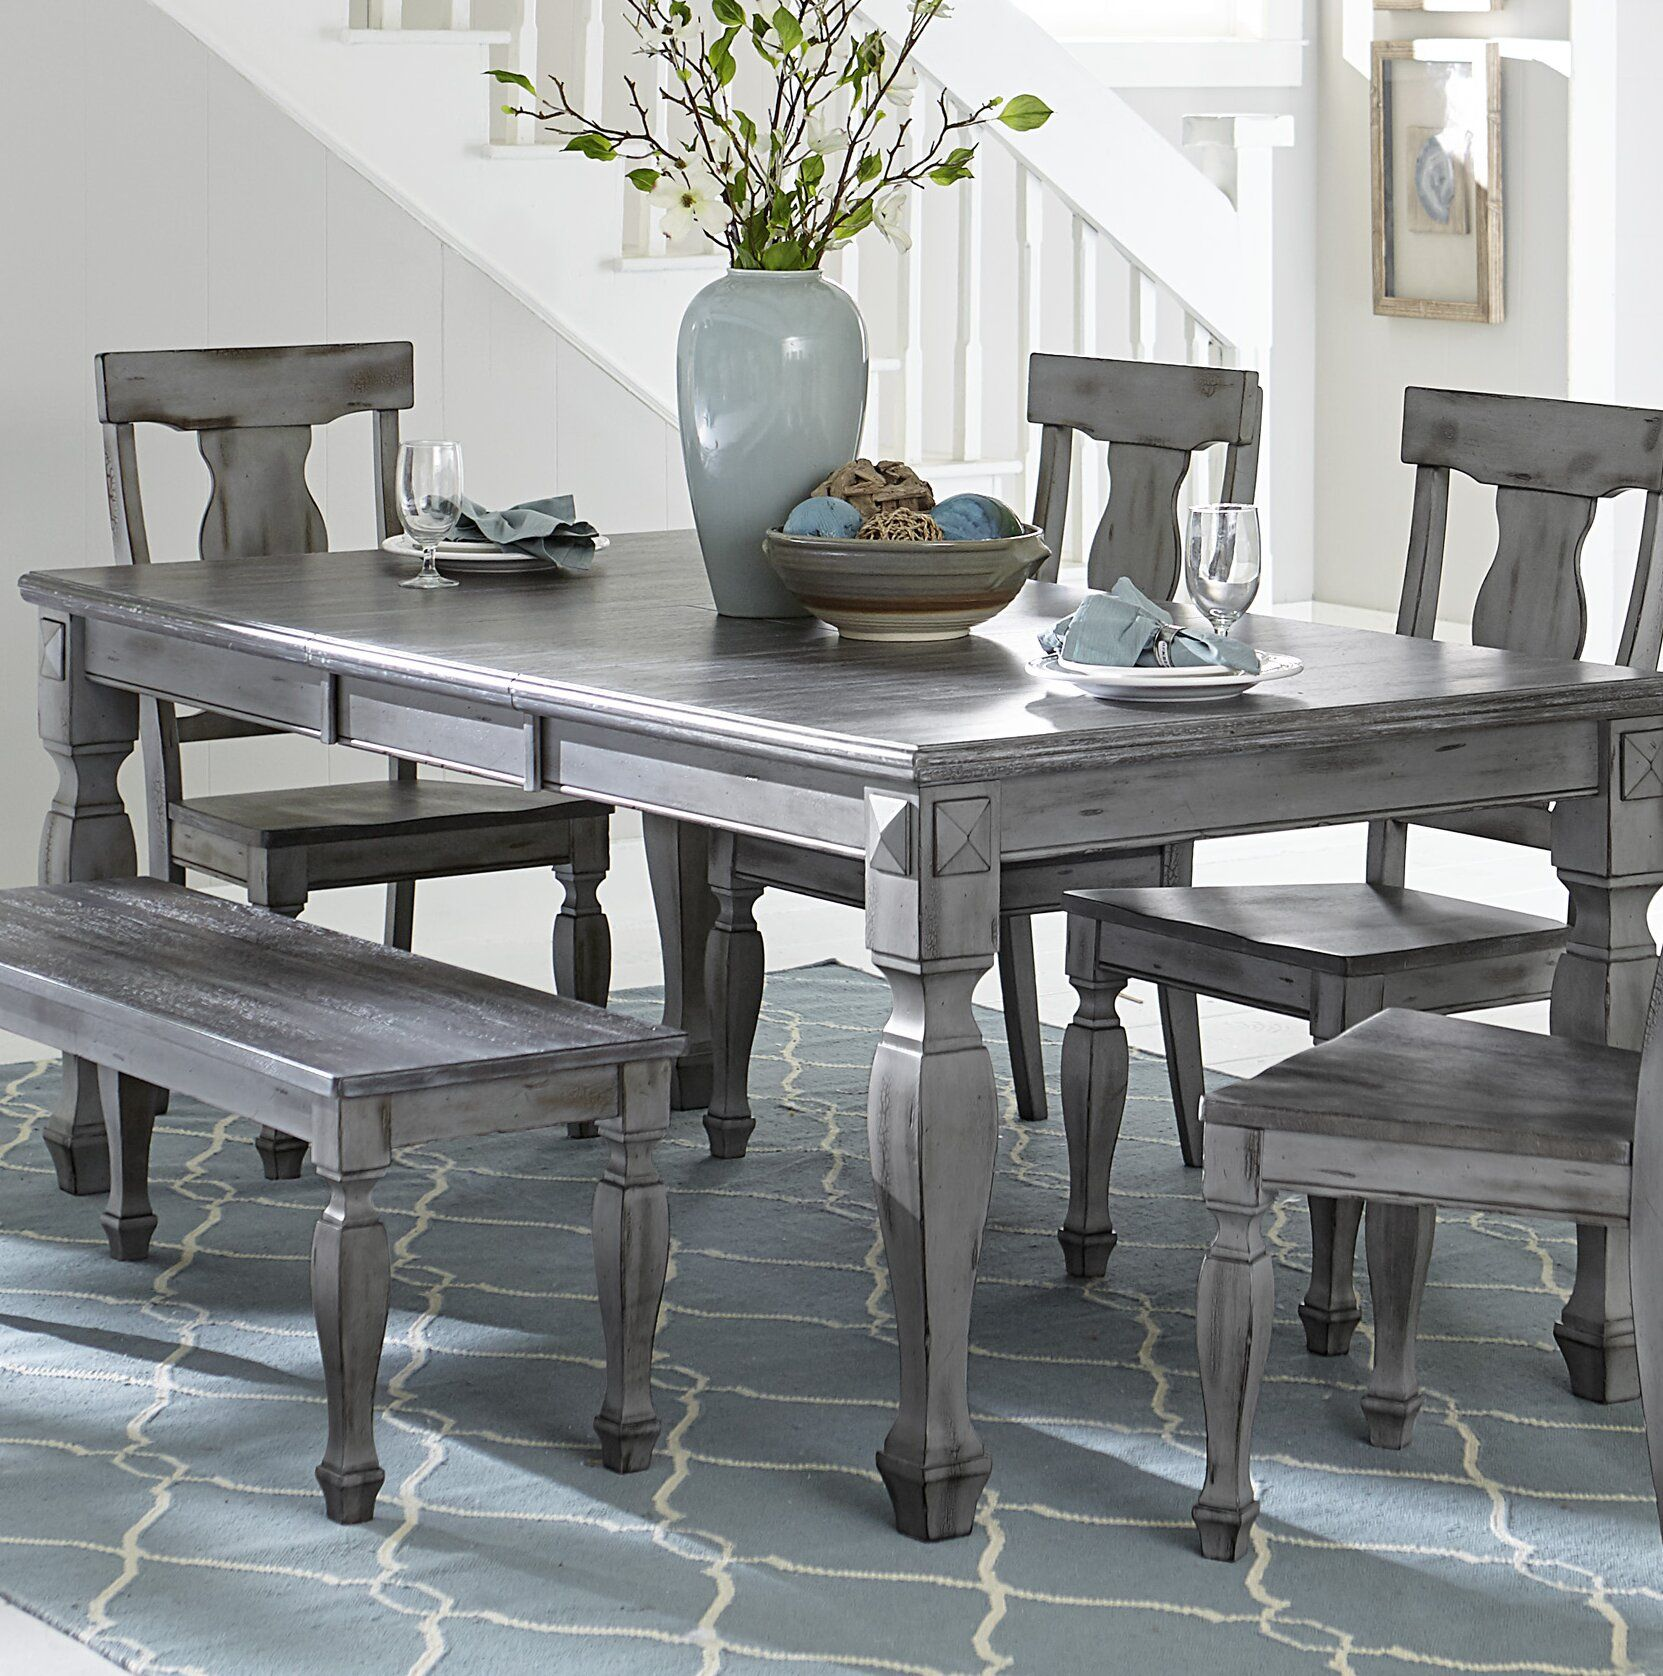 19+ Solid wood dining table with bench Inspiration